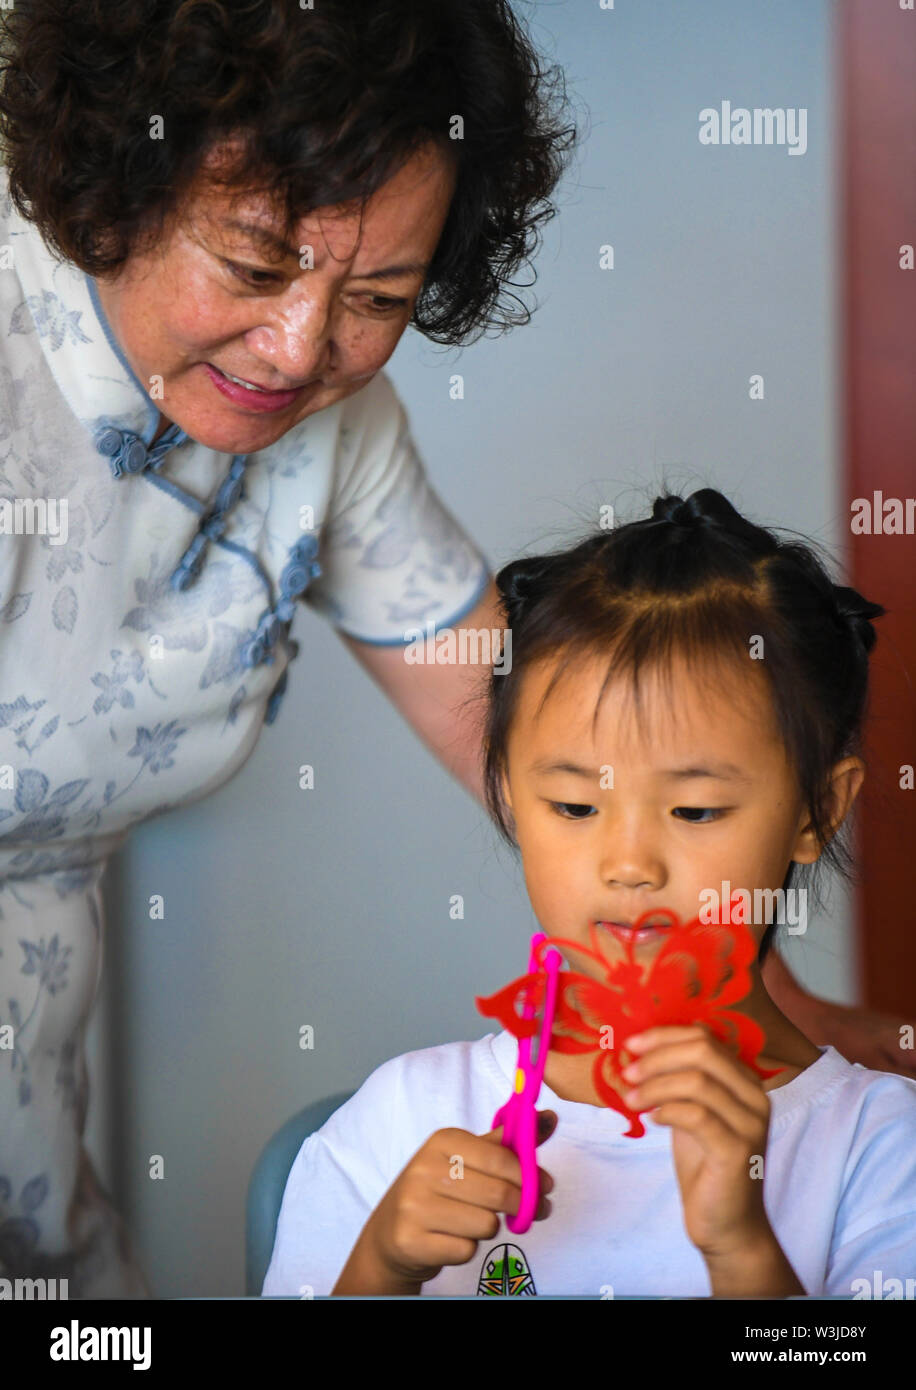 Xianghe, China's Hebei Province. 16th July, 2019. A folk artist instructs a girl to do paper cutting in Xianghe County, north China's Hebei Province, July 16, 2019. The activity was organized by the local government to help children appreciate the traditional culture during their summer vacation. Credit: Li Xiaoguo/Xinhua/Alamy Live News - Stock Image